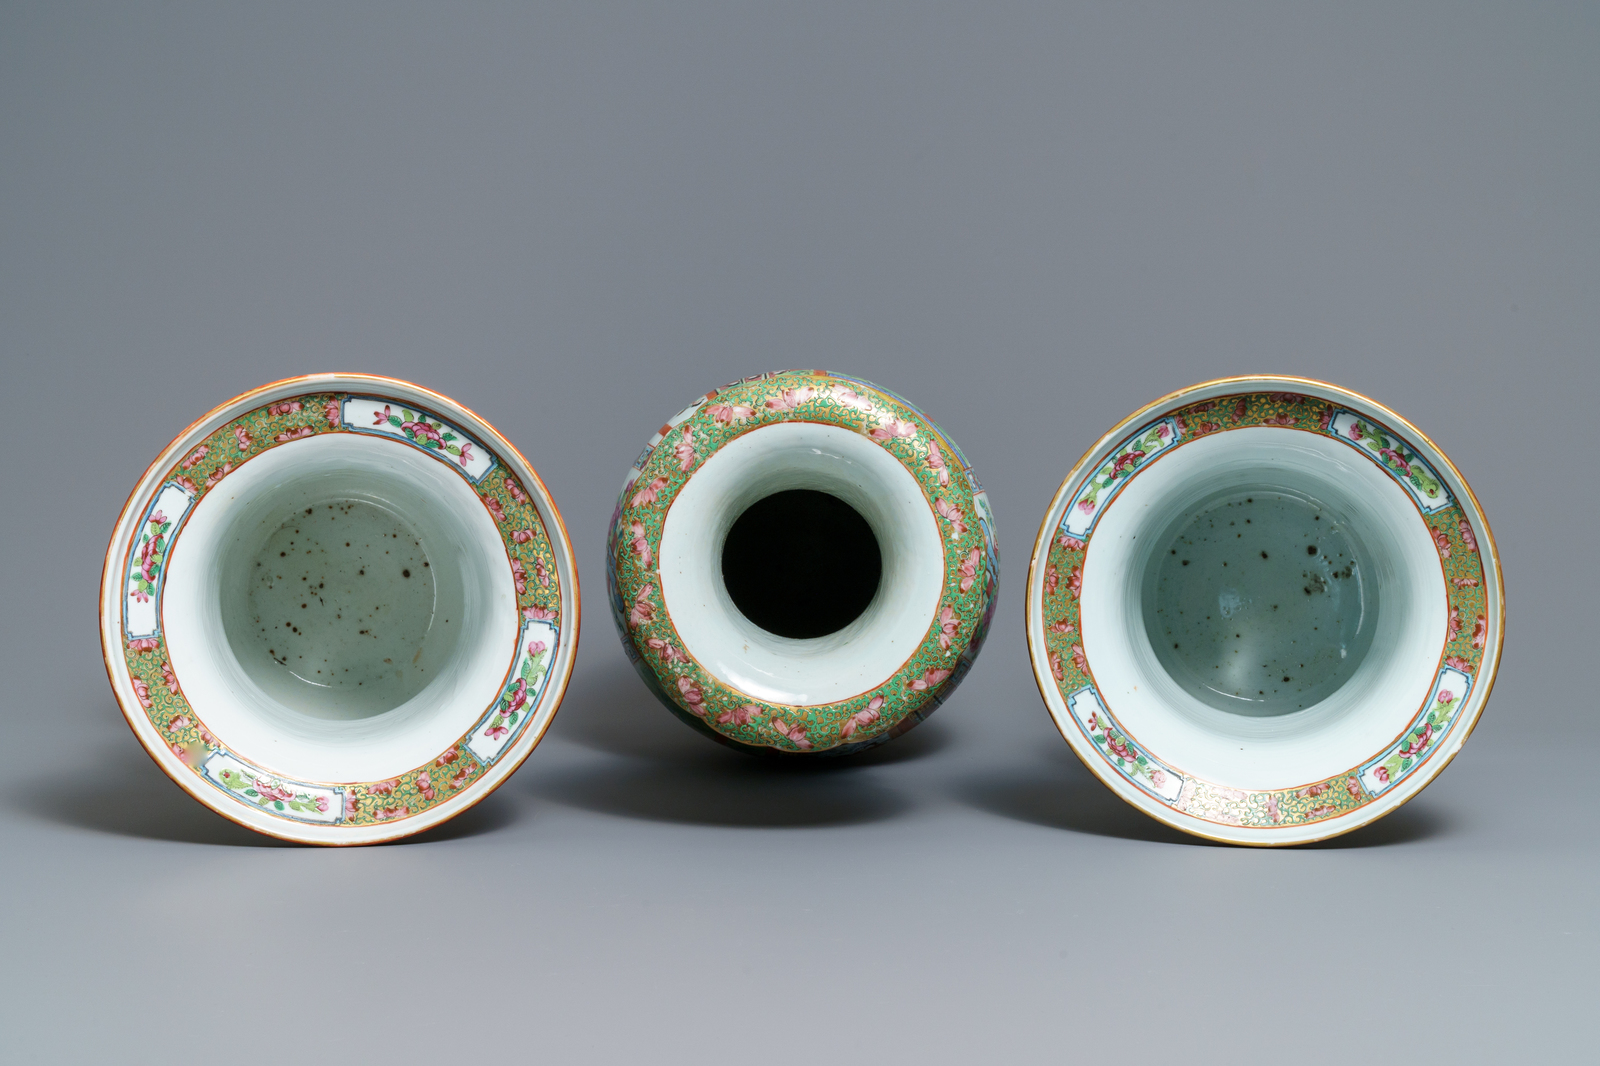 A pair of Chinese Canton famille rose spittoons and a vase, 19th C. - Image 5 of 6